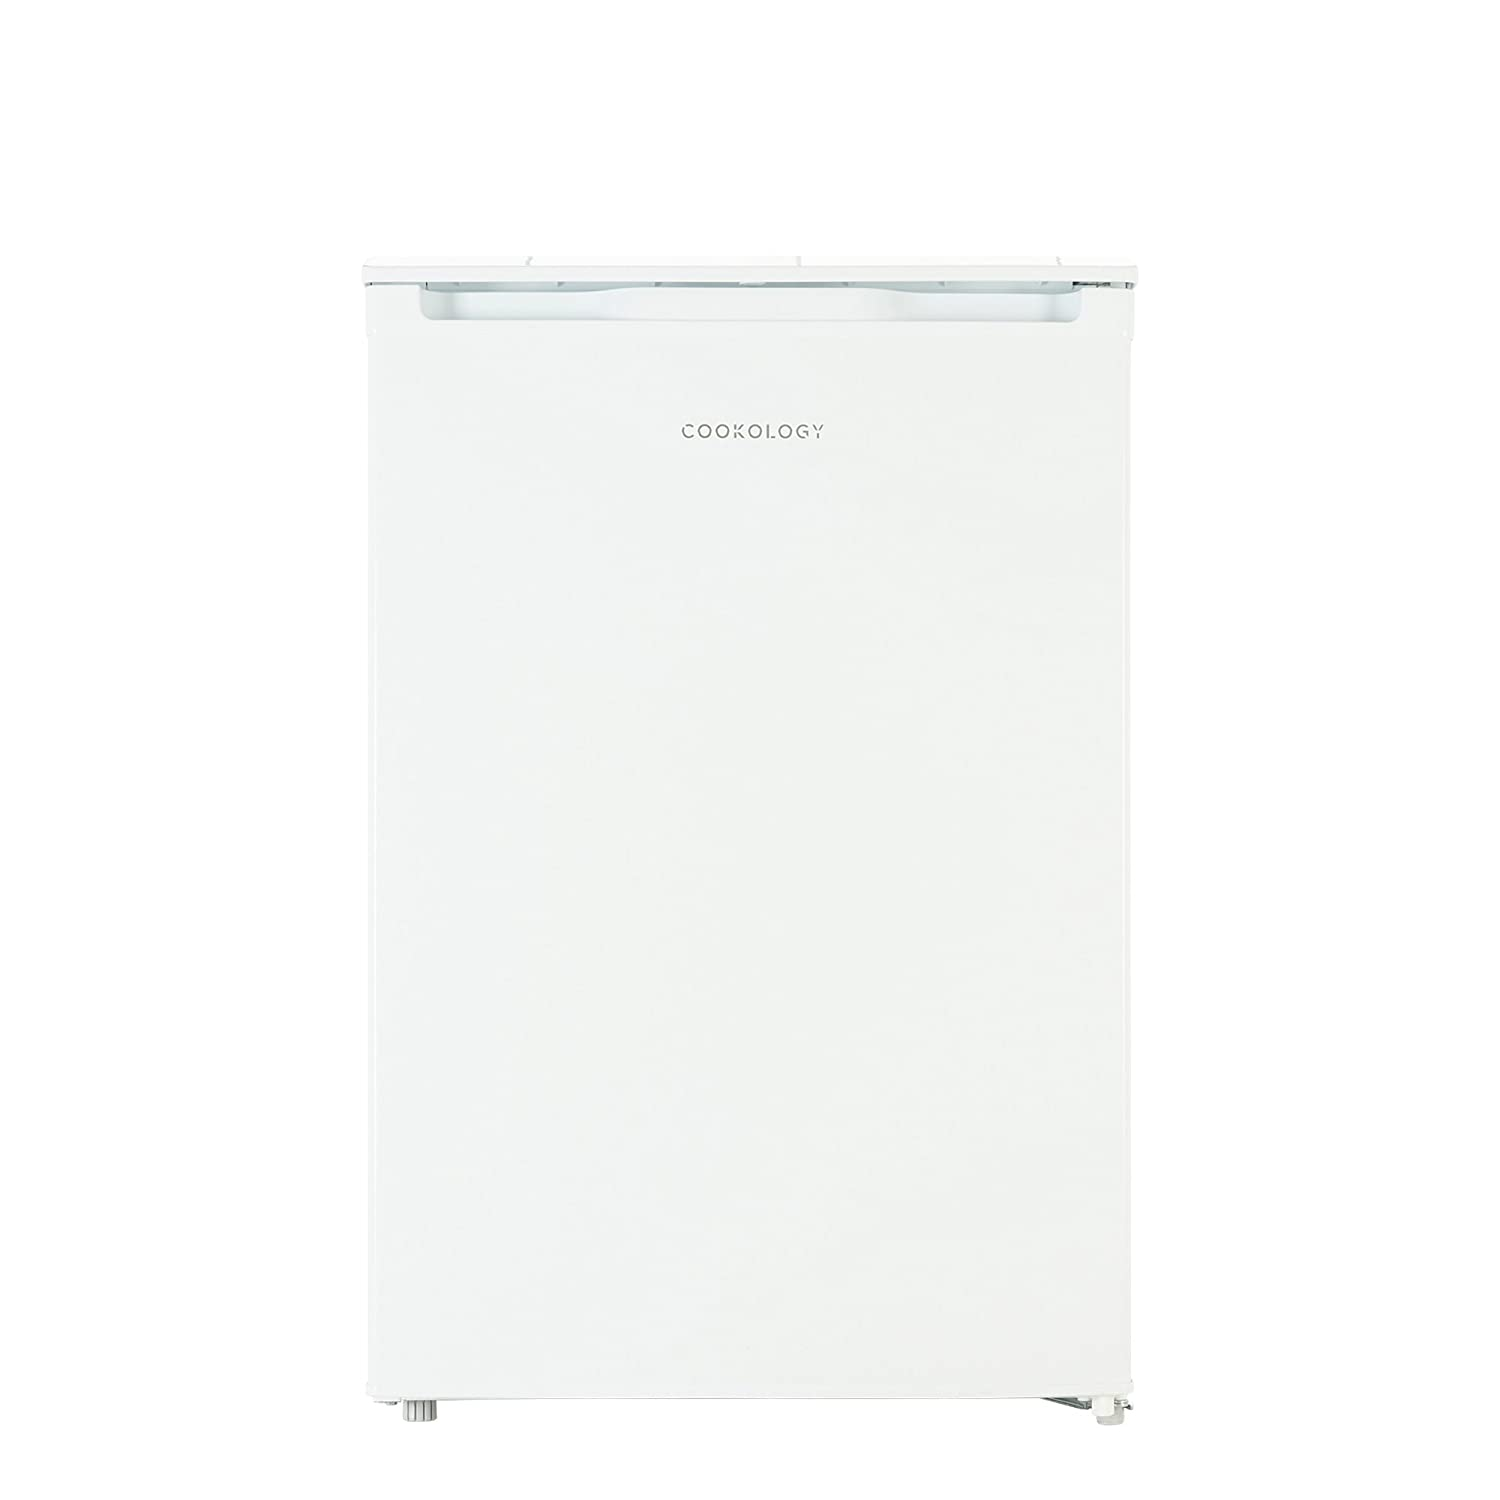 Cookology UCFZ86WH 55cm Freestanding Undercounter Freezer in White, 86 Litre [Energy Class A+]